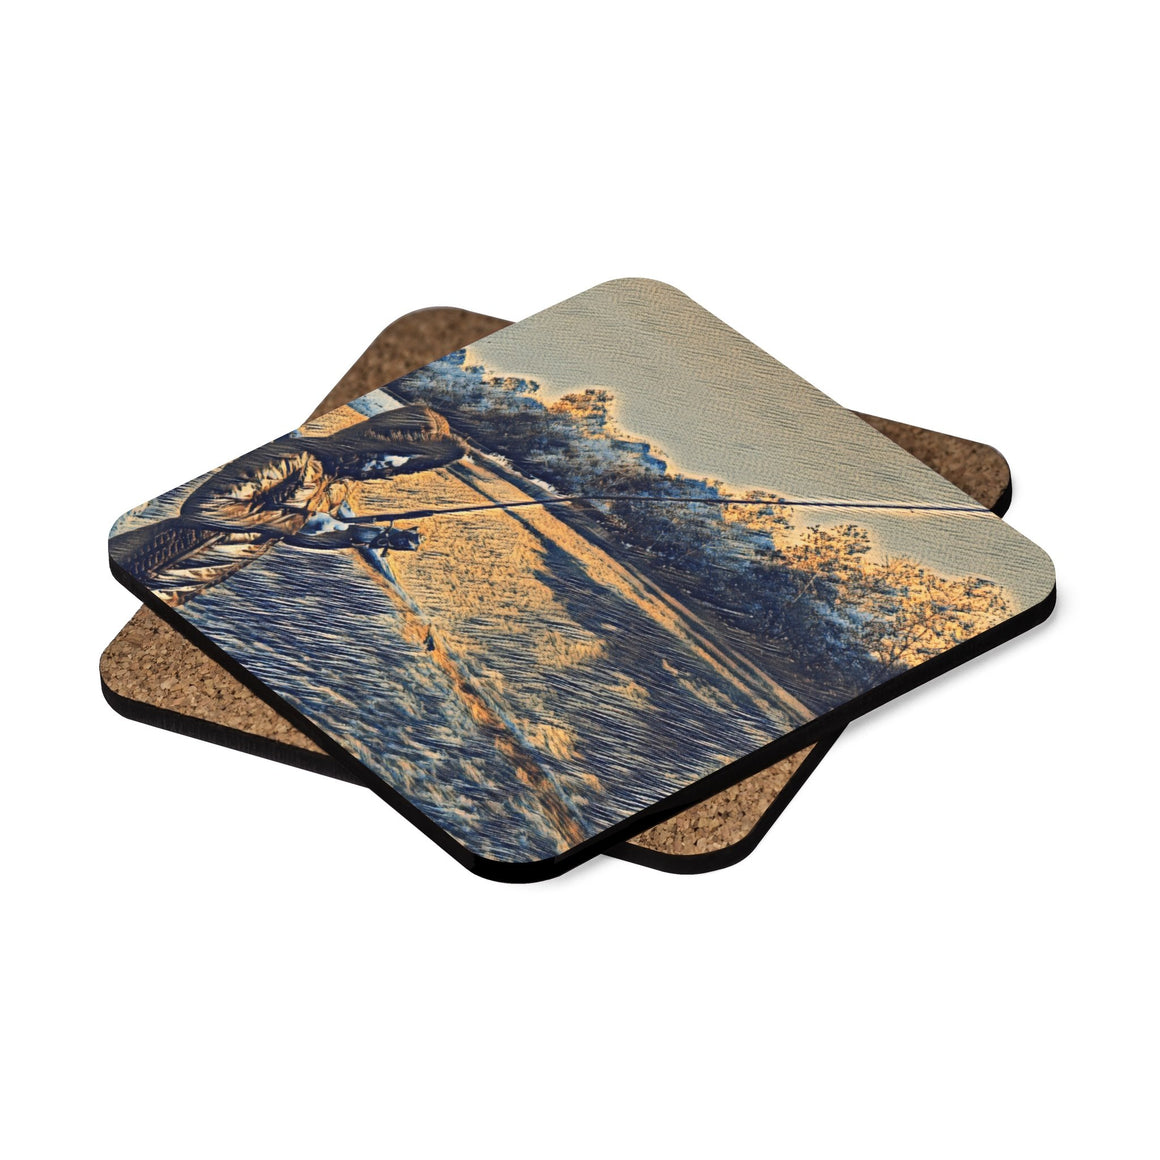 Levi Thang Fishing Design 18 Square Hardboard Coaster Set - 4pcs - I Am A Dreamer